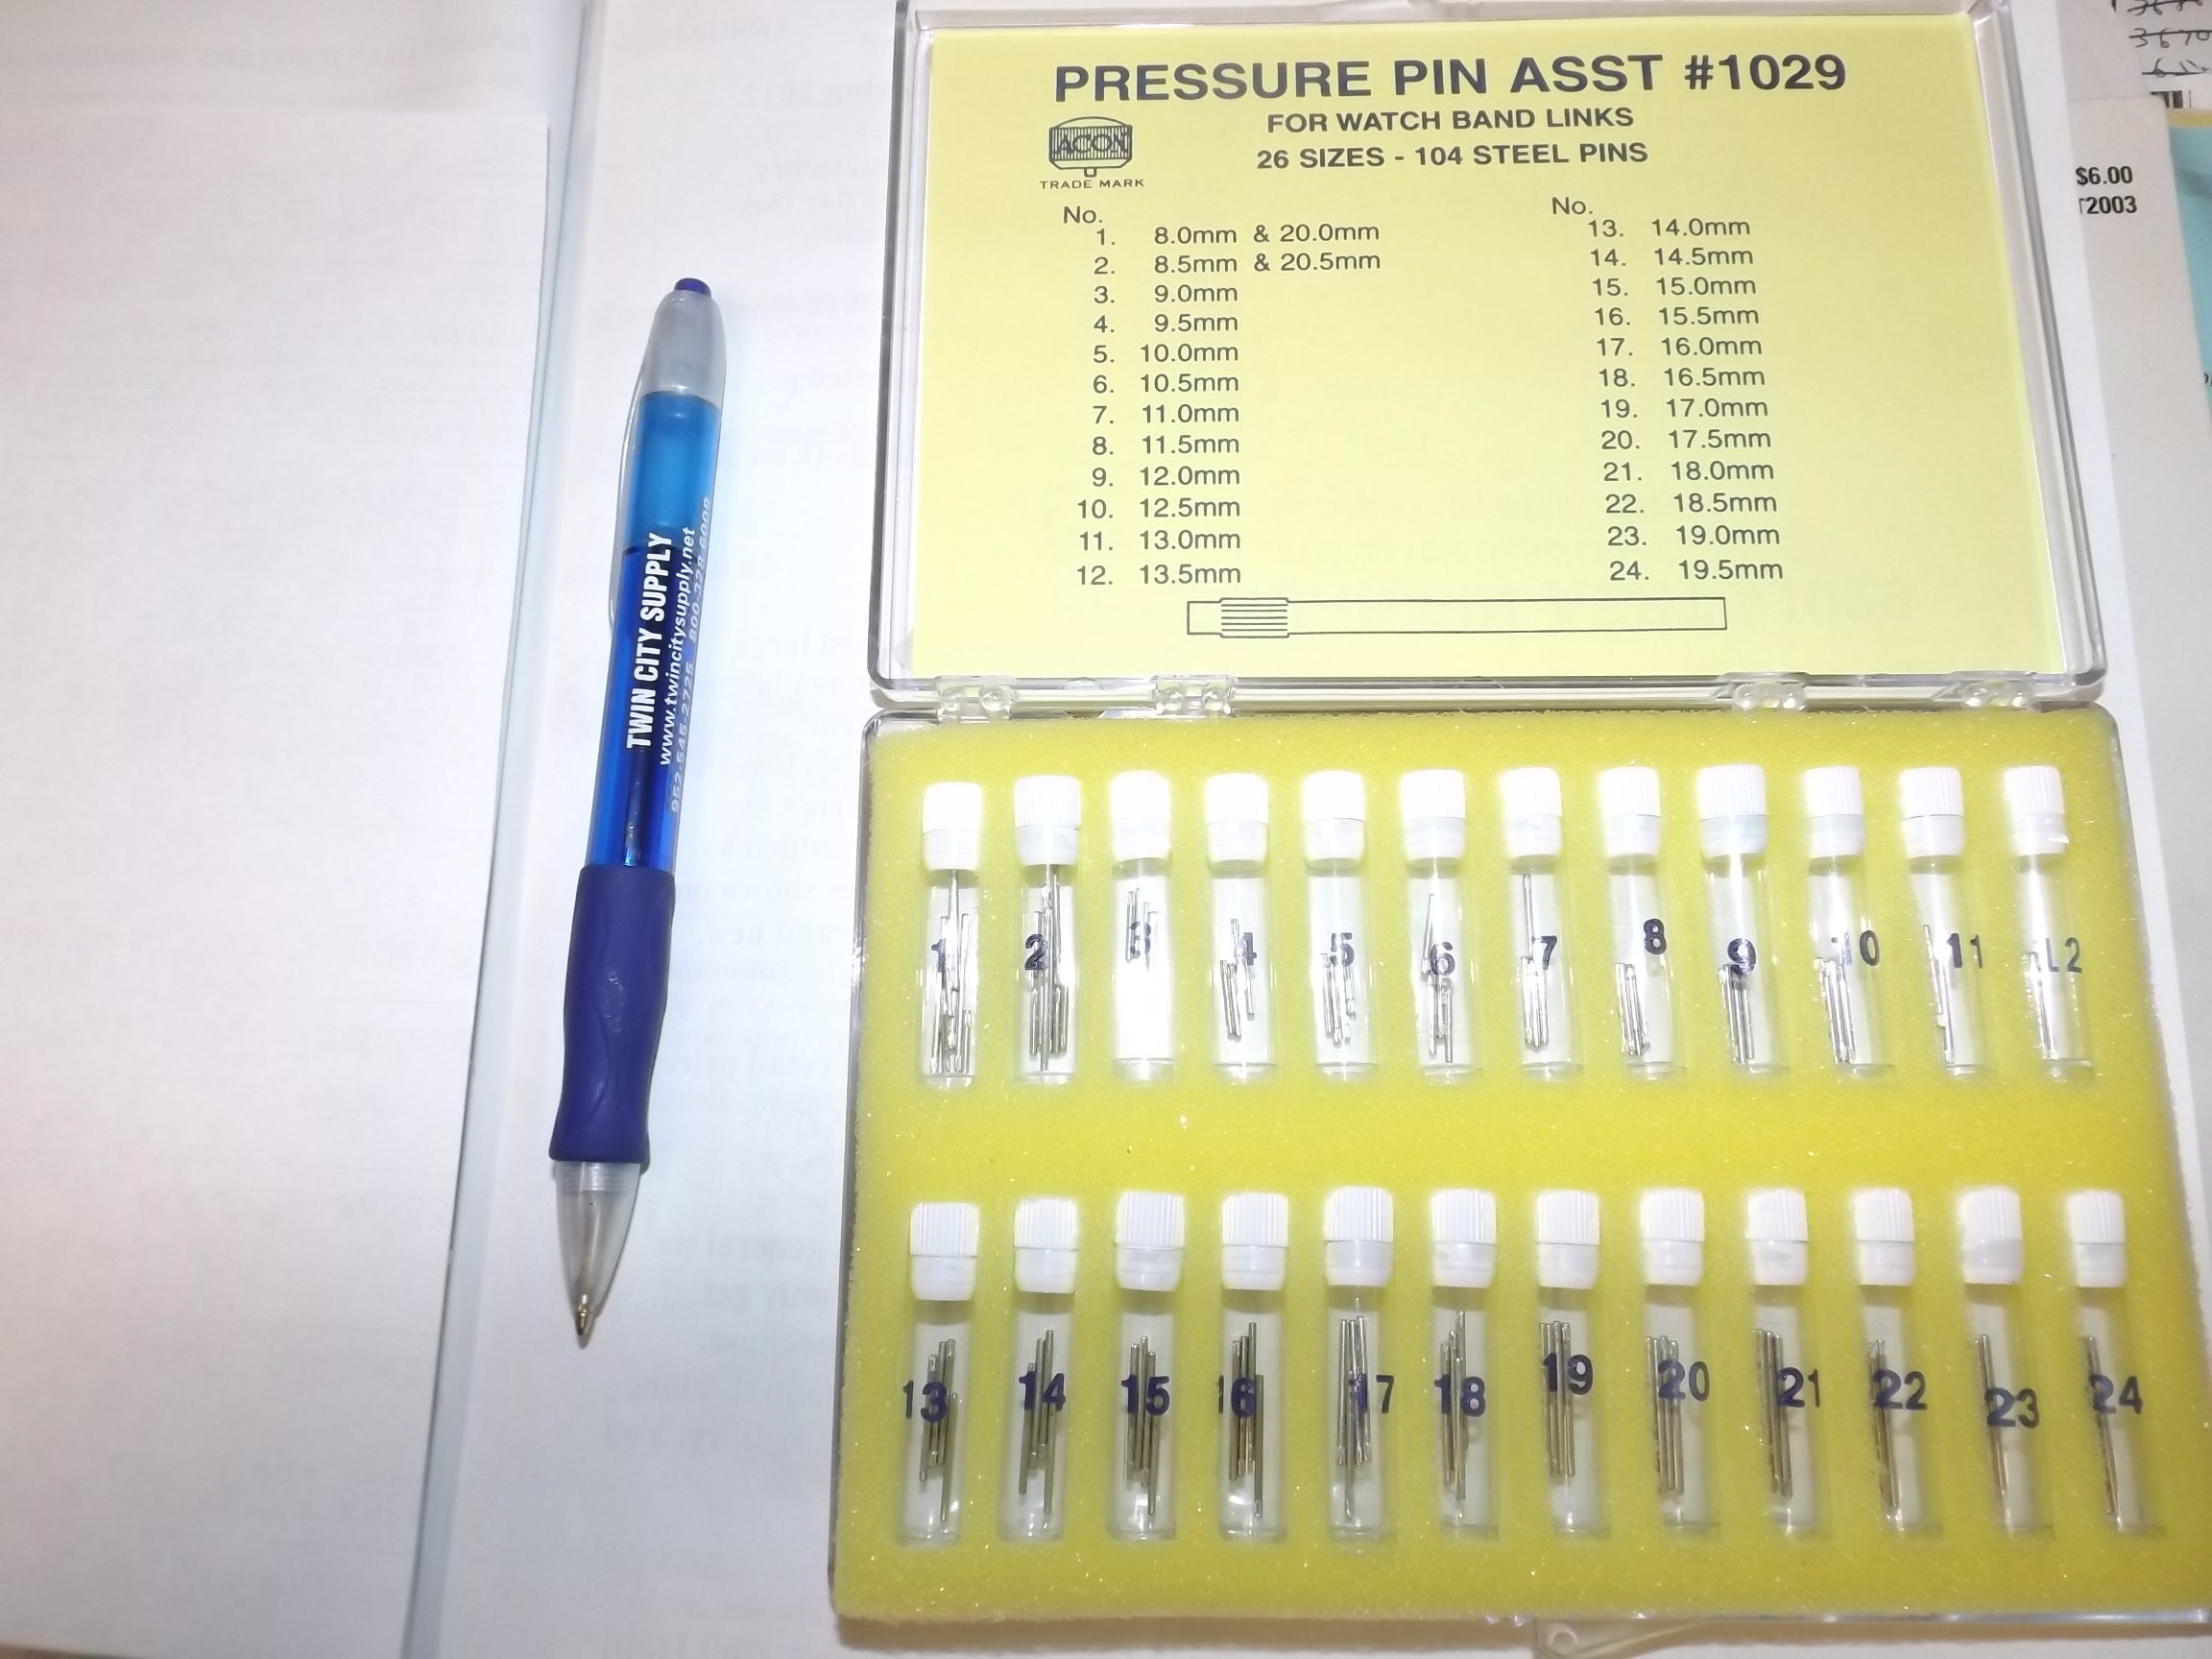 PP1029 Pressure Pin Assortment, for watch band links--26 sizes, 104 Steel Pins- Acon